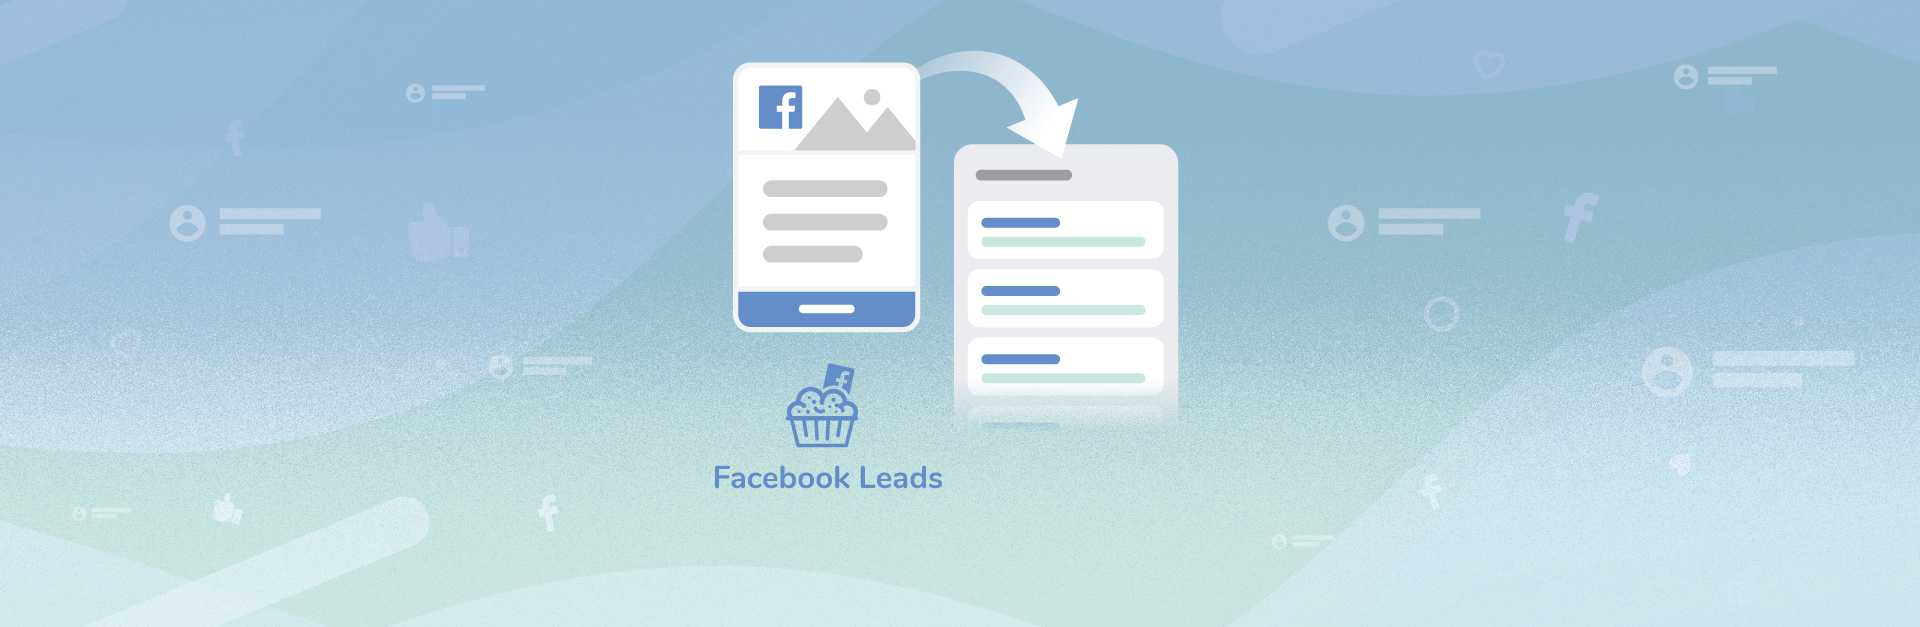 Facebook Leads Ad form becomes a Crmble card in your Trello board